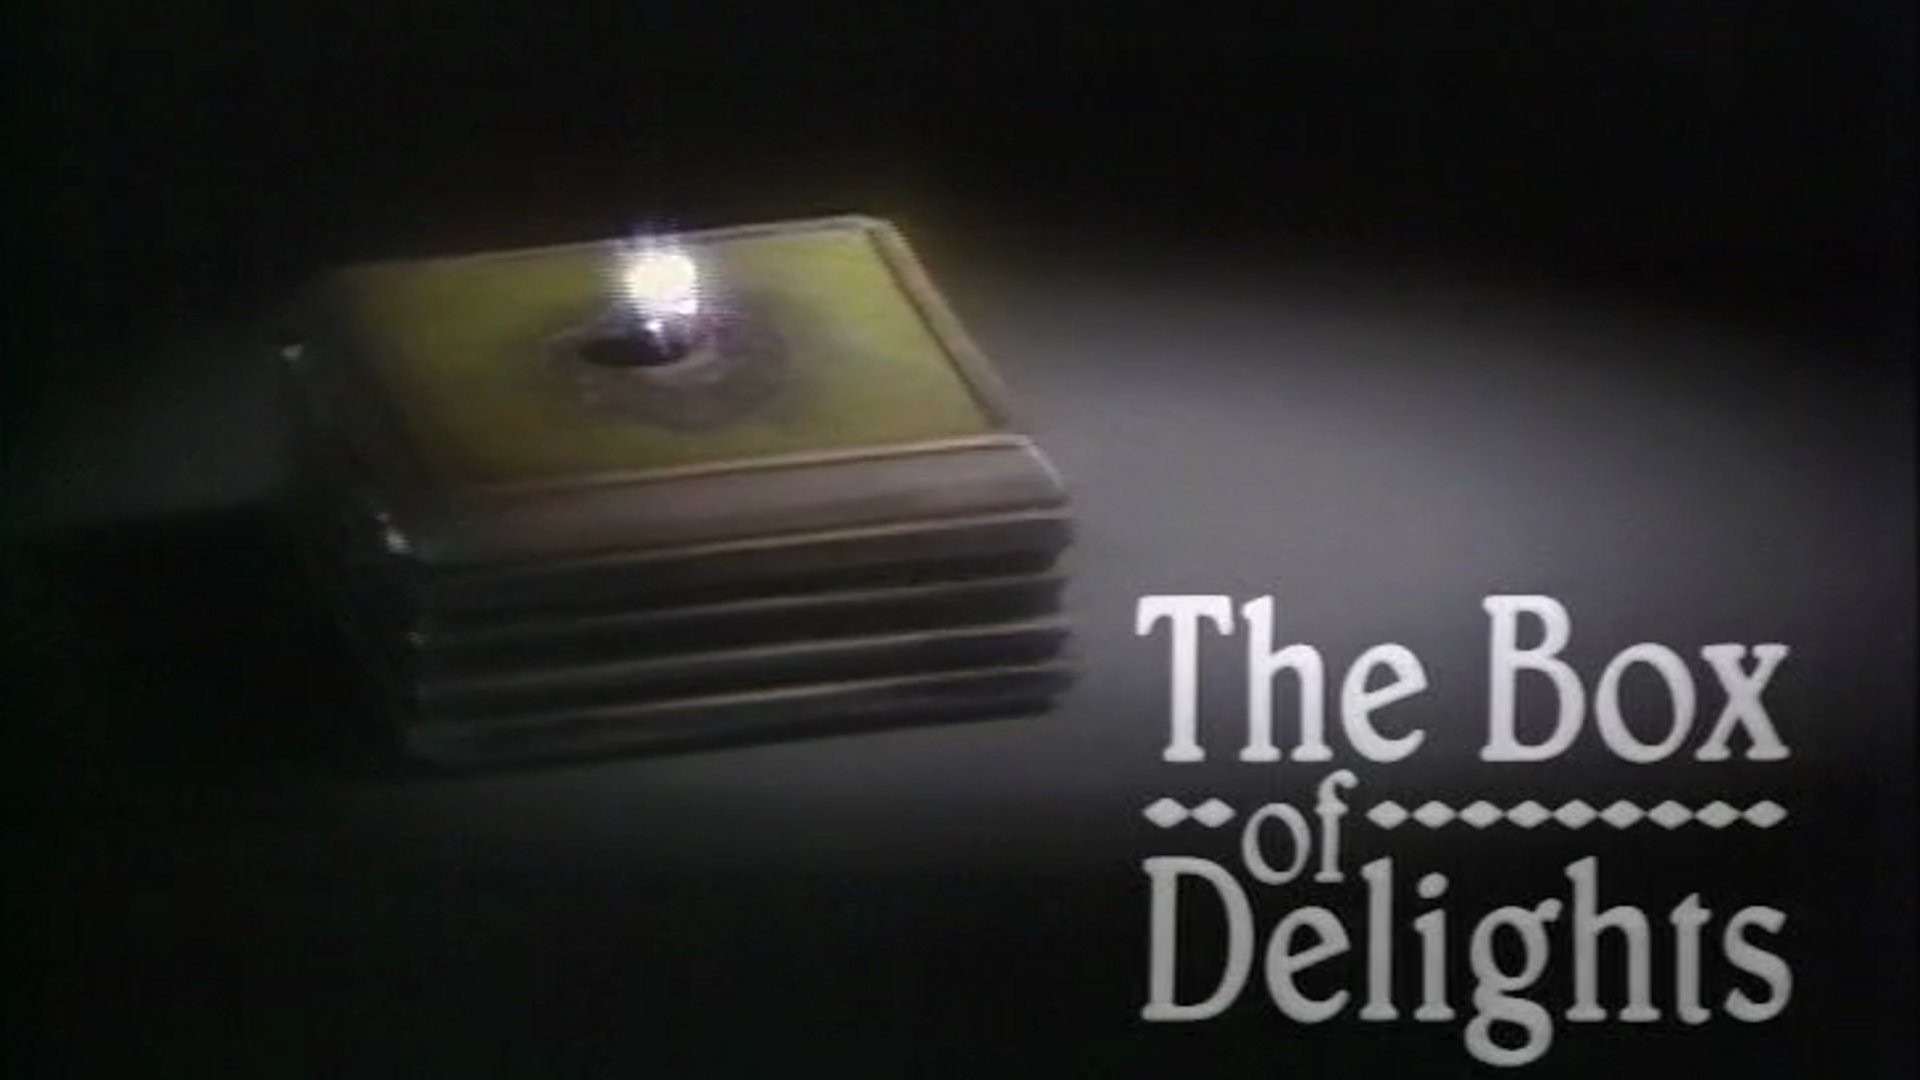 Show The Box of Delights